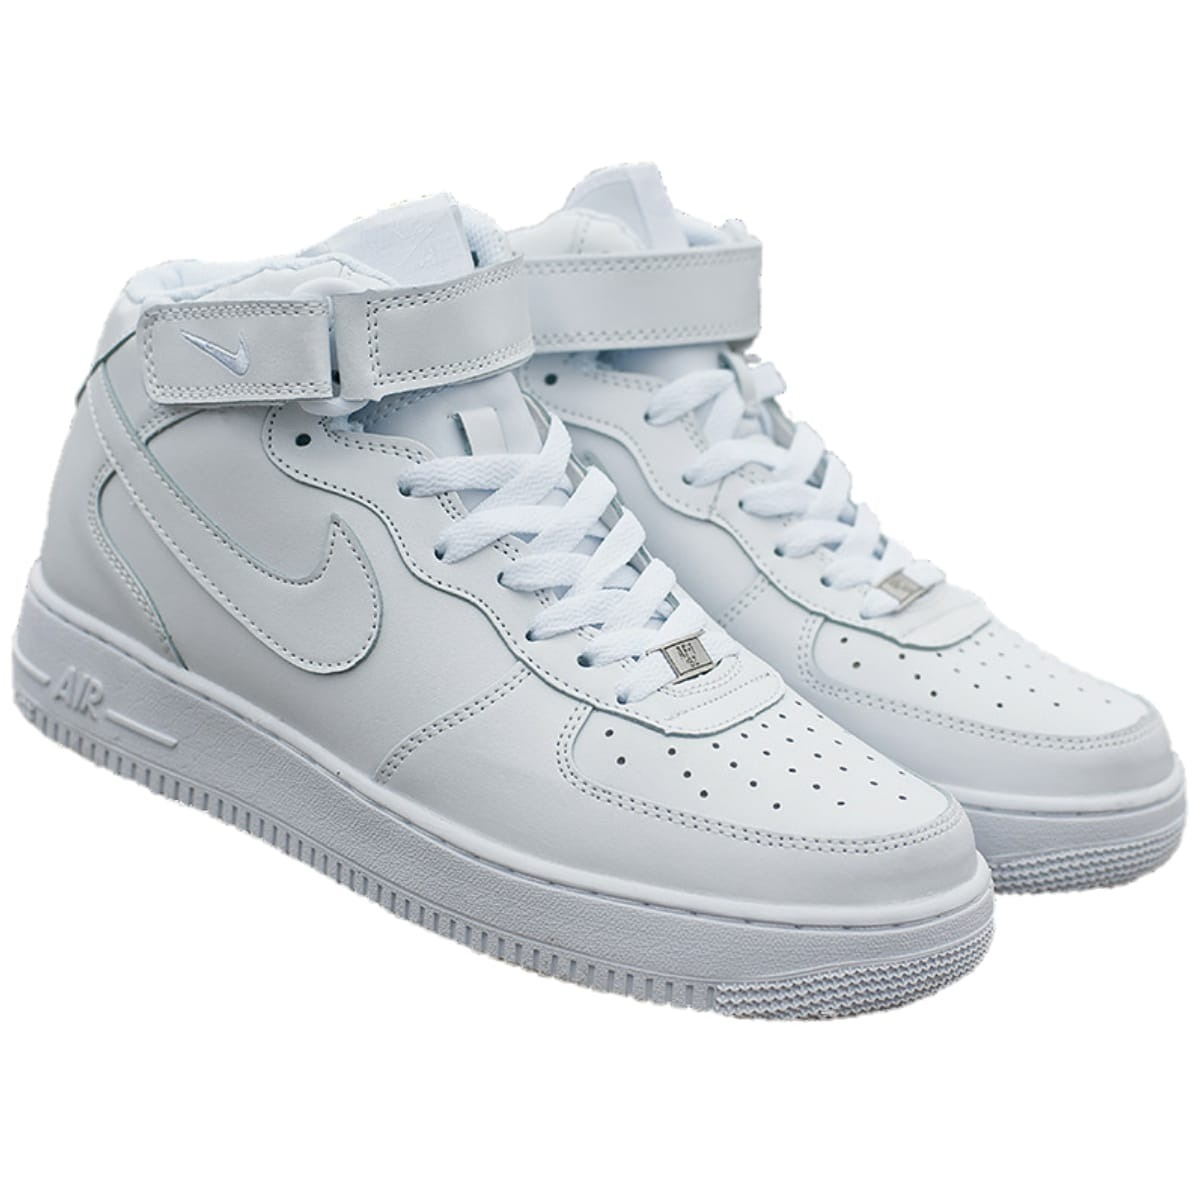 Zapatillas Nike Air Force One 1 Hombre Y Mujer